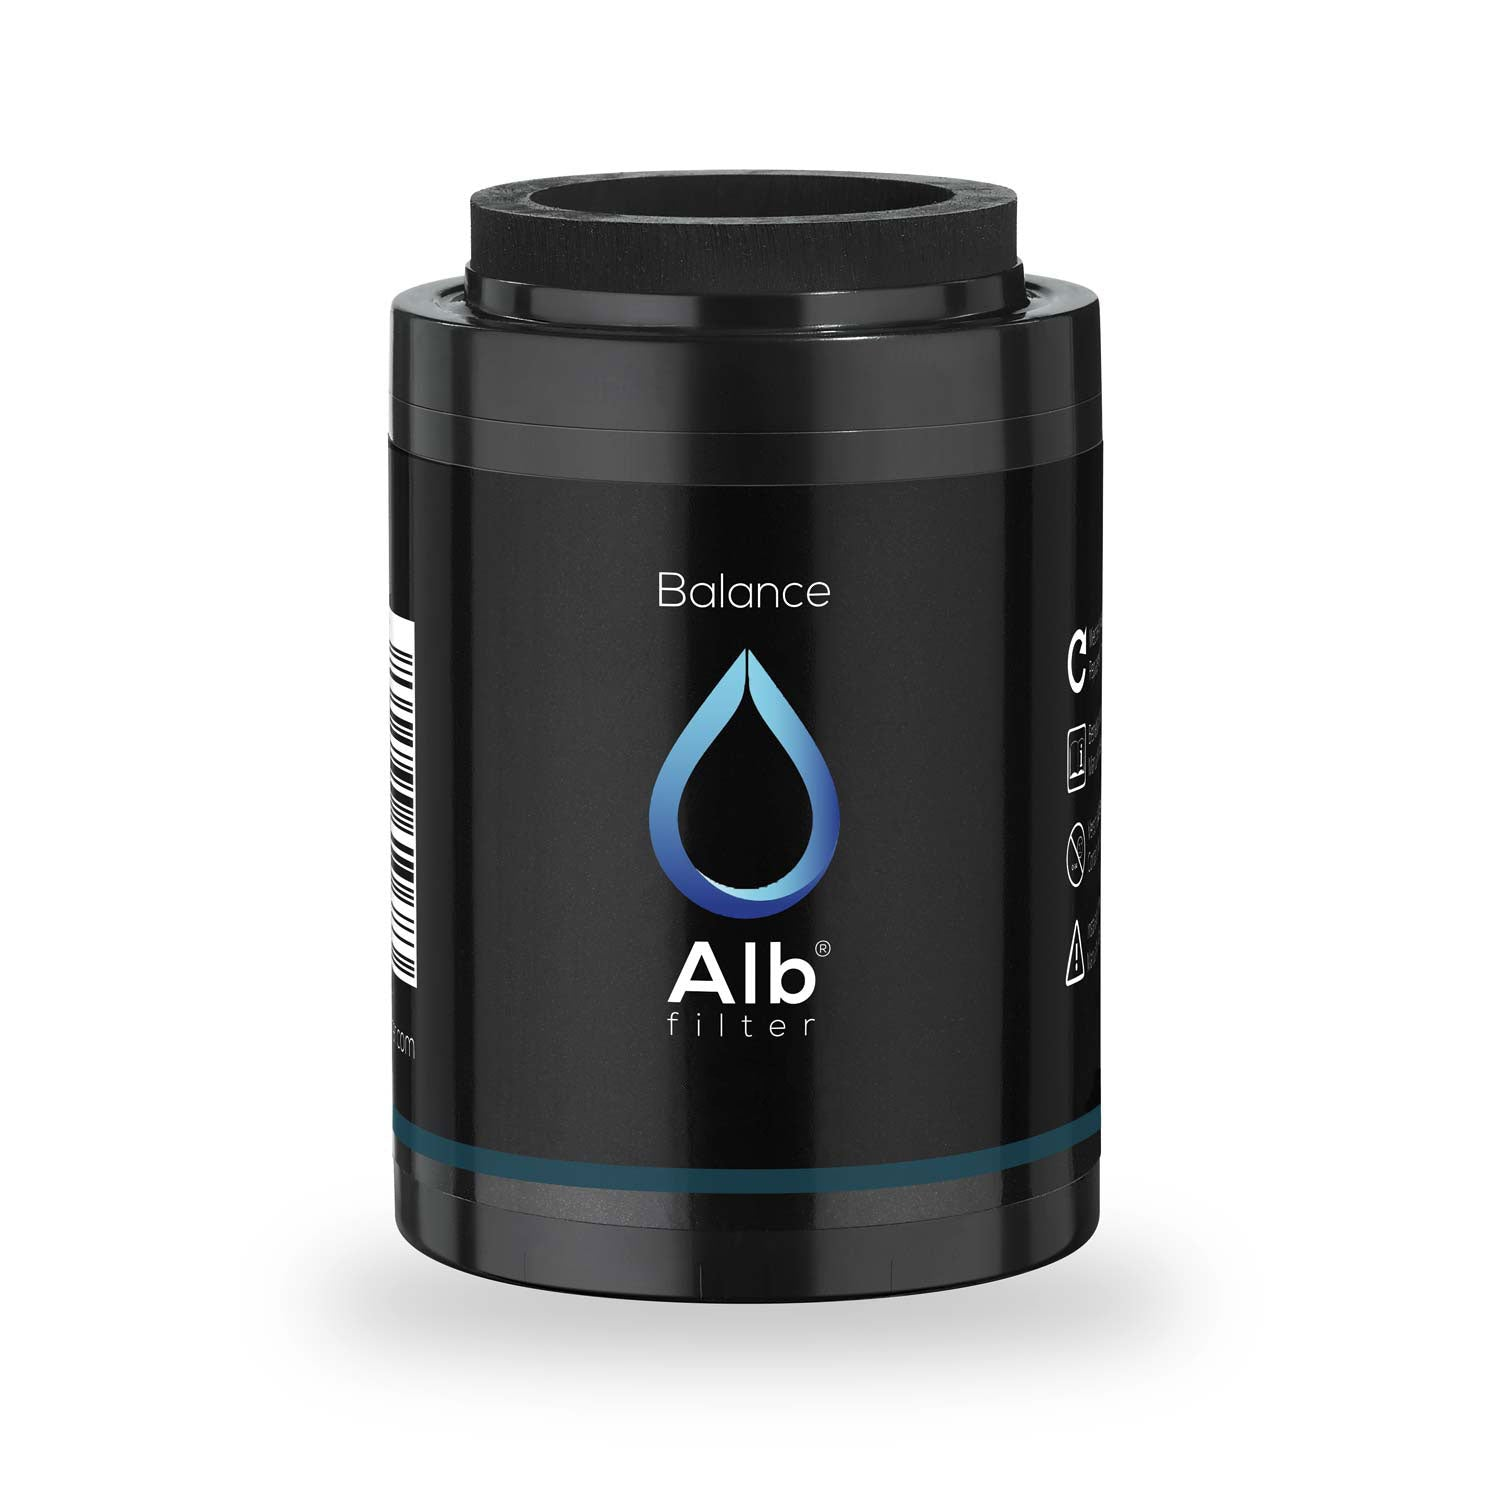 Balance shower filter cartridge against heavy metals, chlorine and pollutants in the water